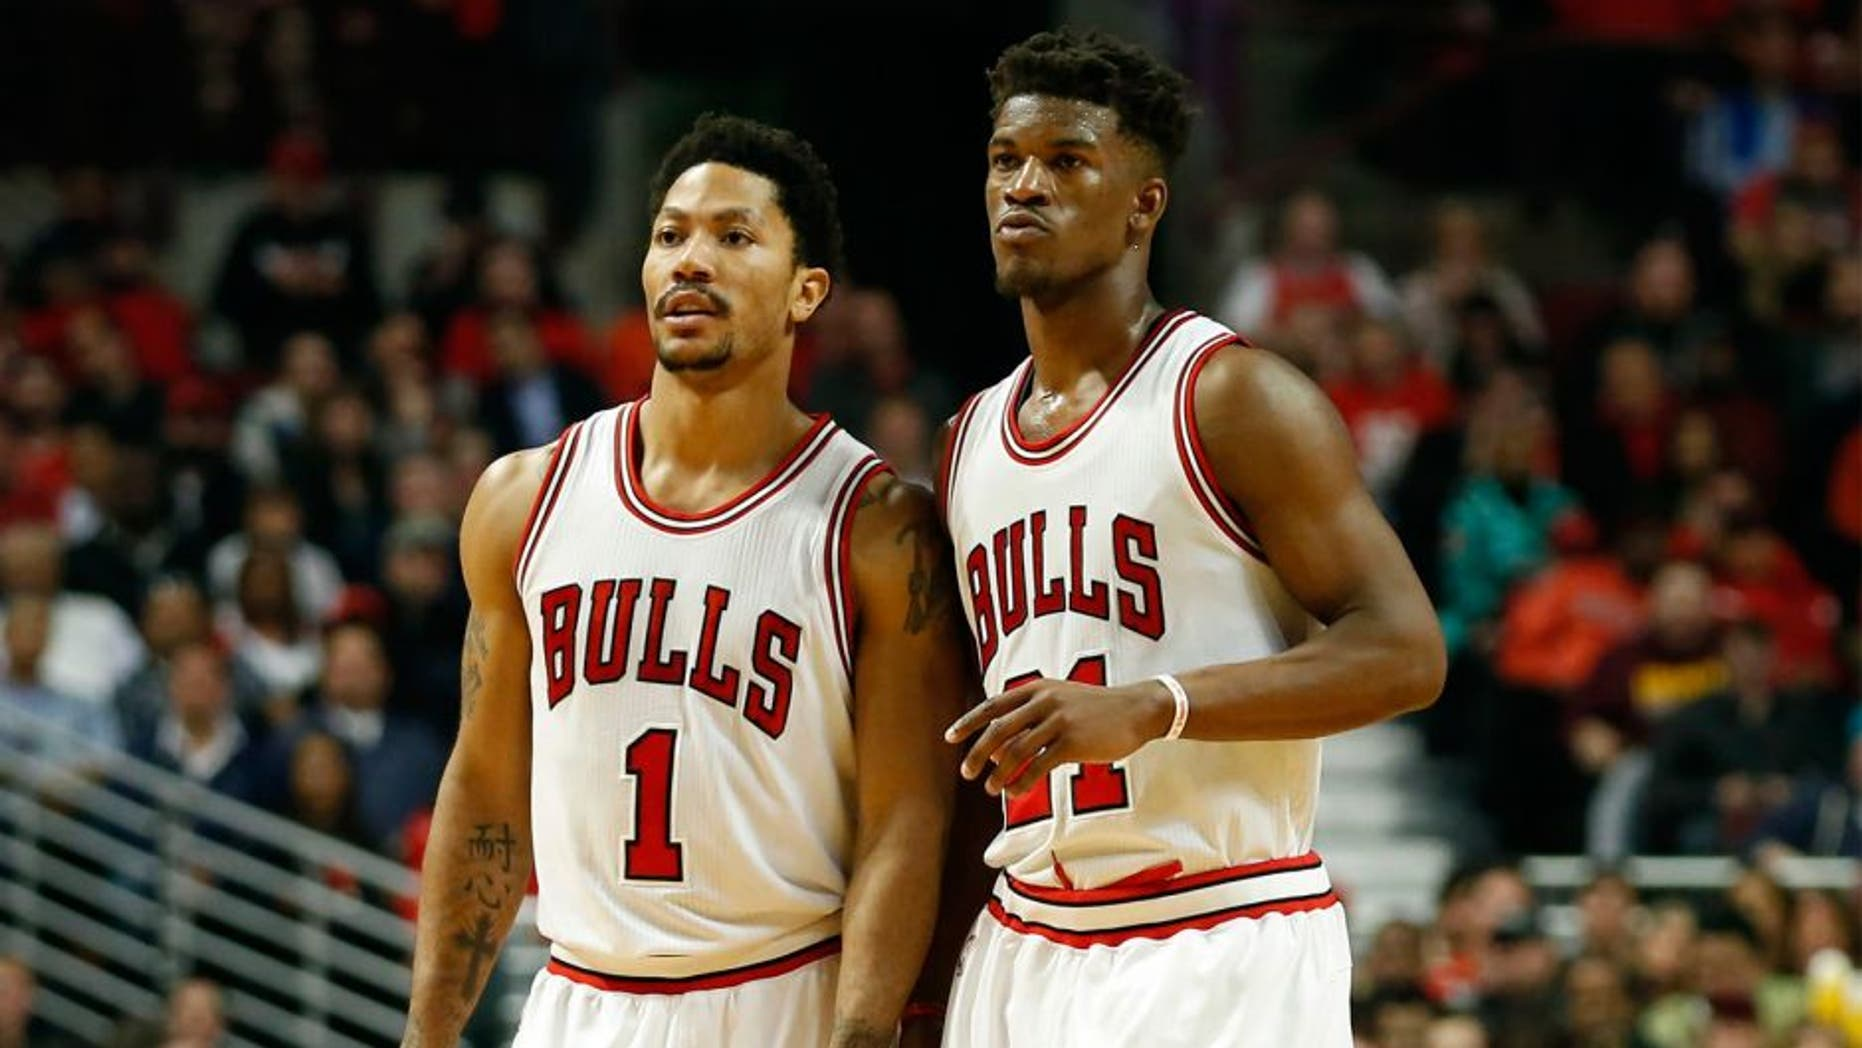 Apr 27, 2015; Chicago, IL, USA; Chicago Bulls guard Derrick Rose (1) and guard Jimmy Butler (21) talk to each other against the Milwaukee Bucks in game five of the first round of the 2015 NBA Playoffs at United Center. The Bucks won 94-88. Mandatory Credit: Kamil Krzaczynski-USA TODAY Sports